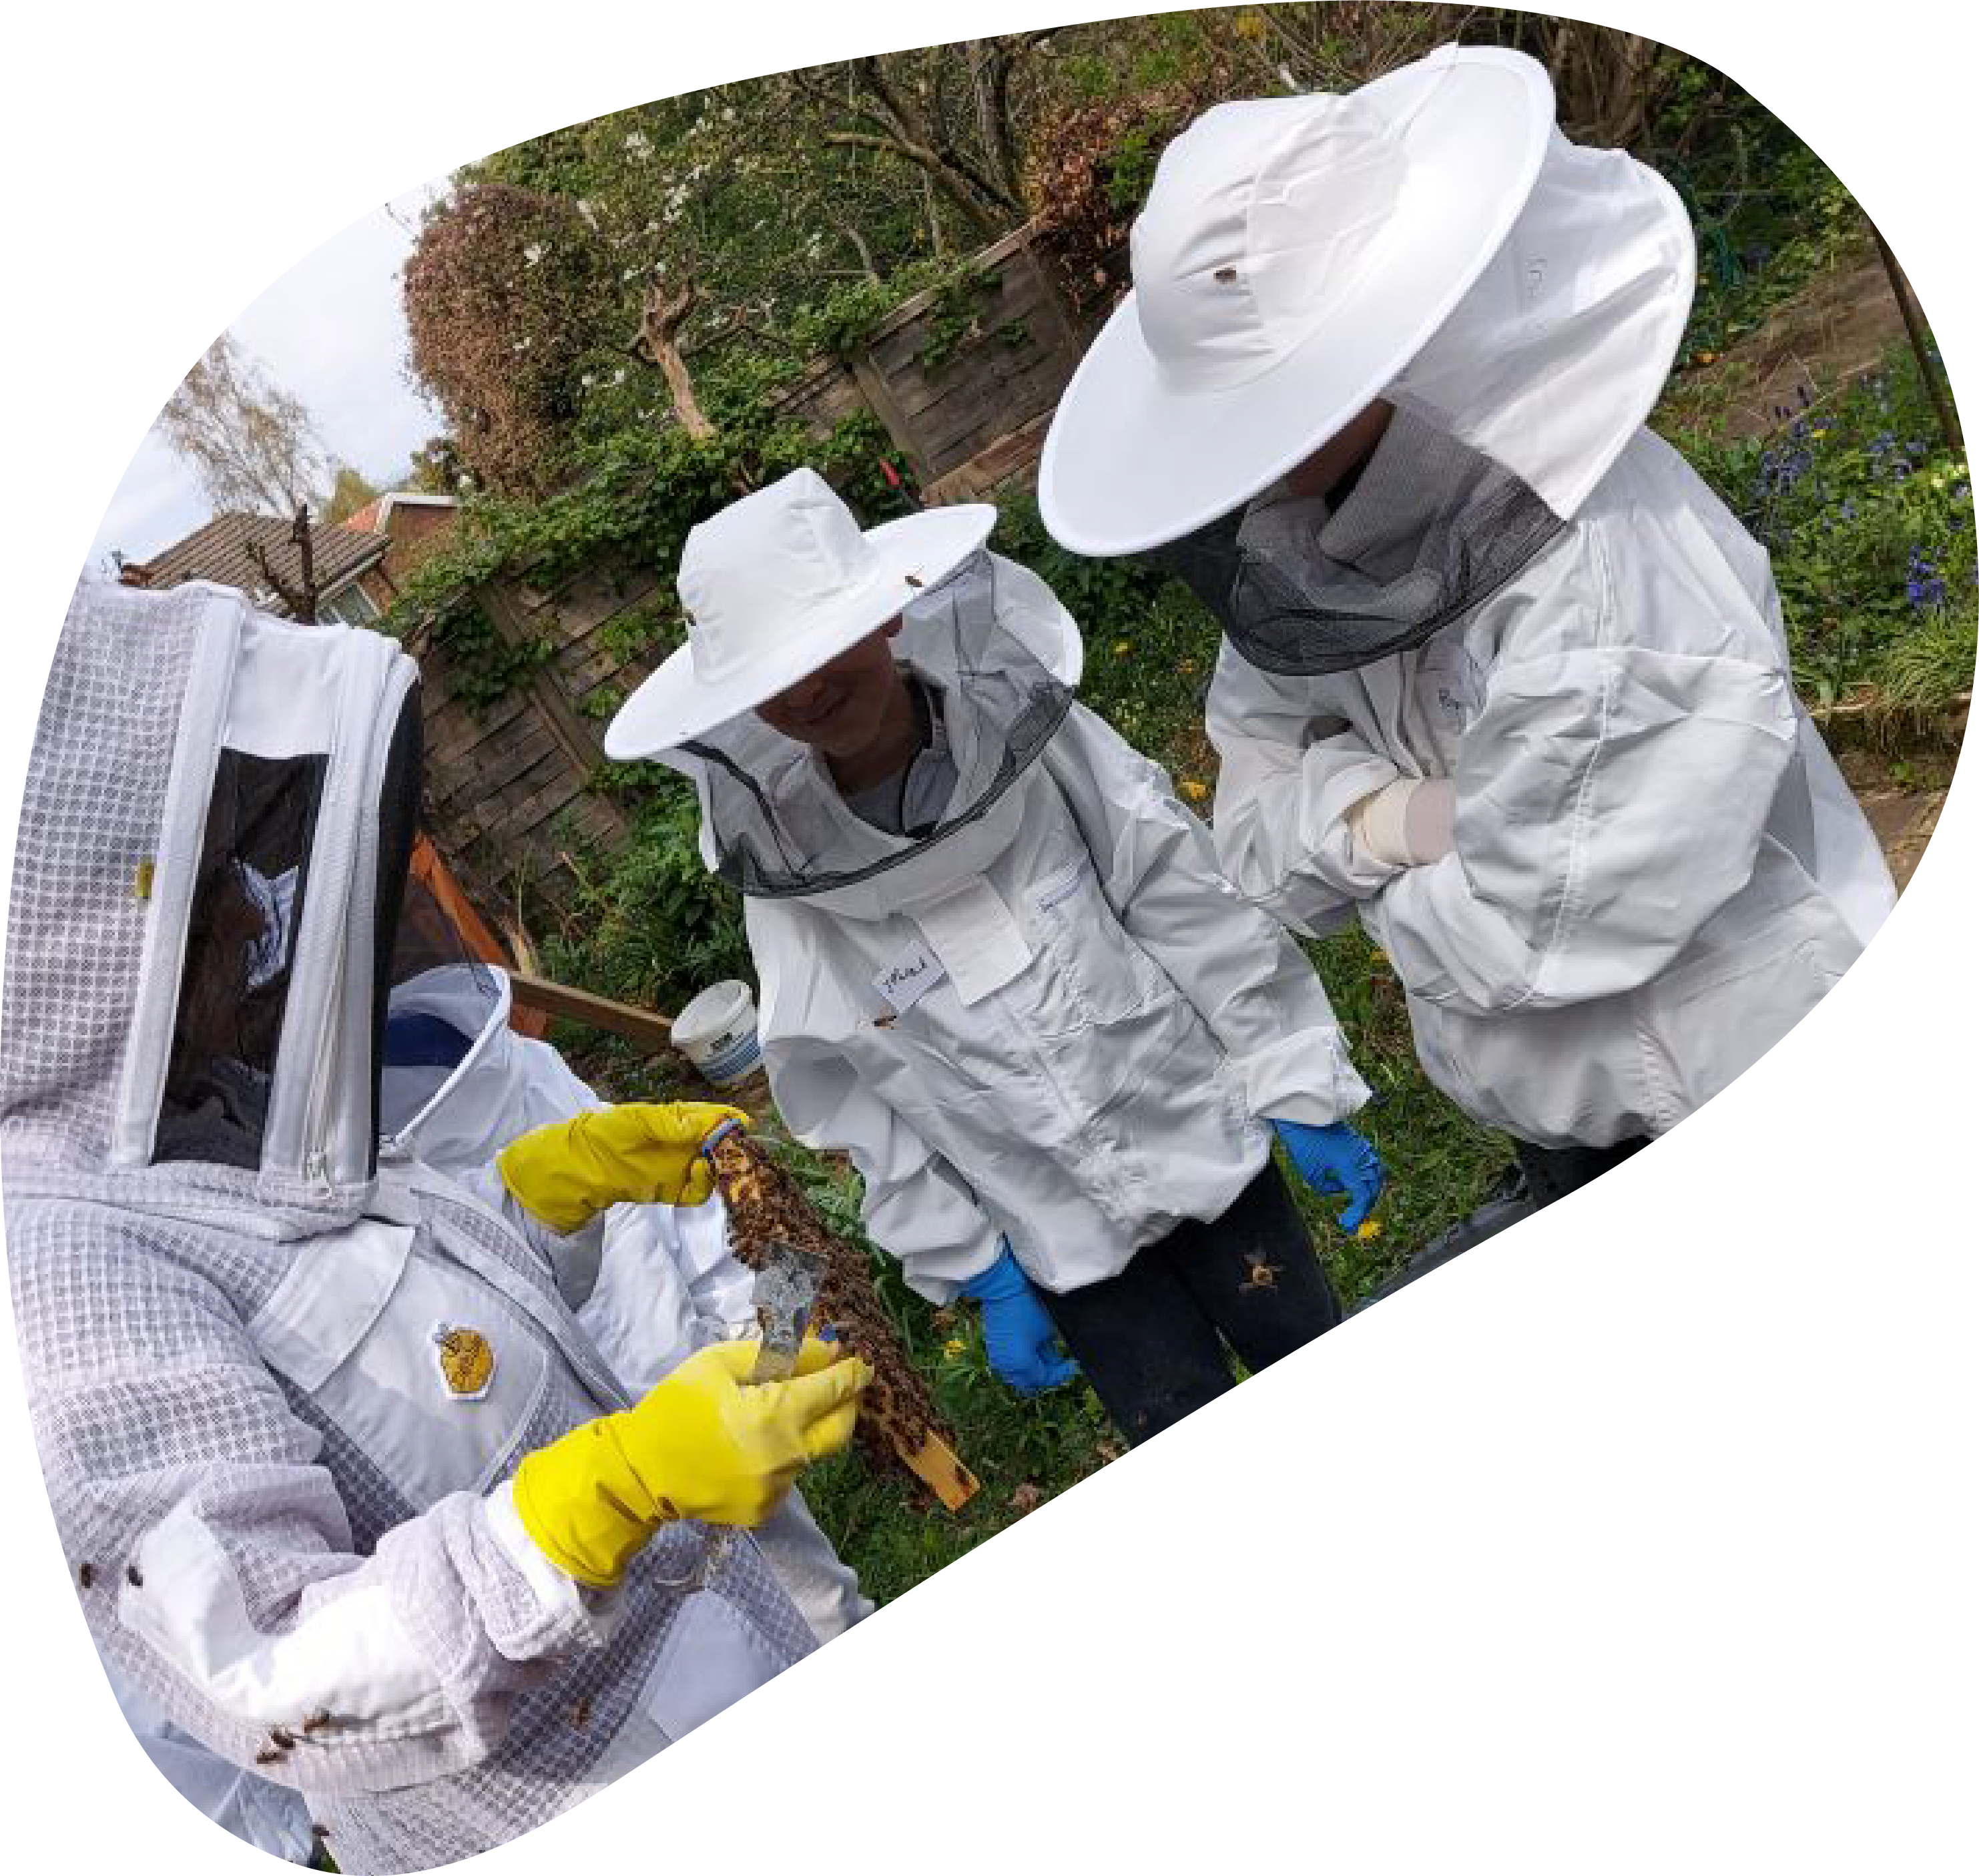 SHOWING BEES